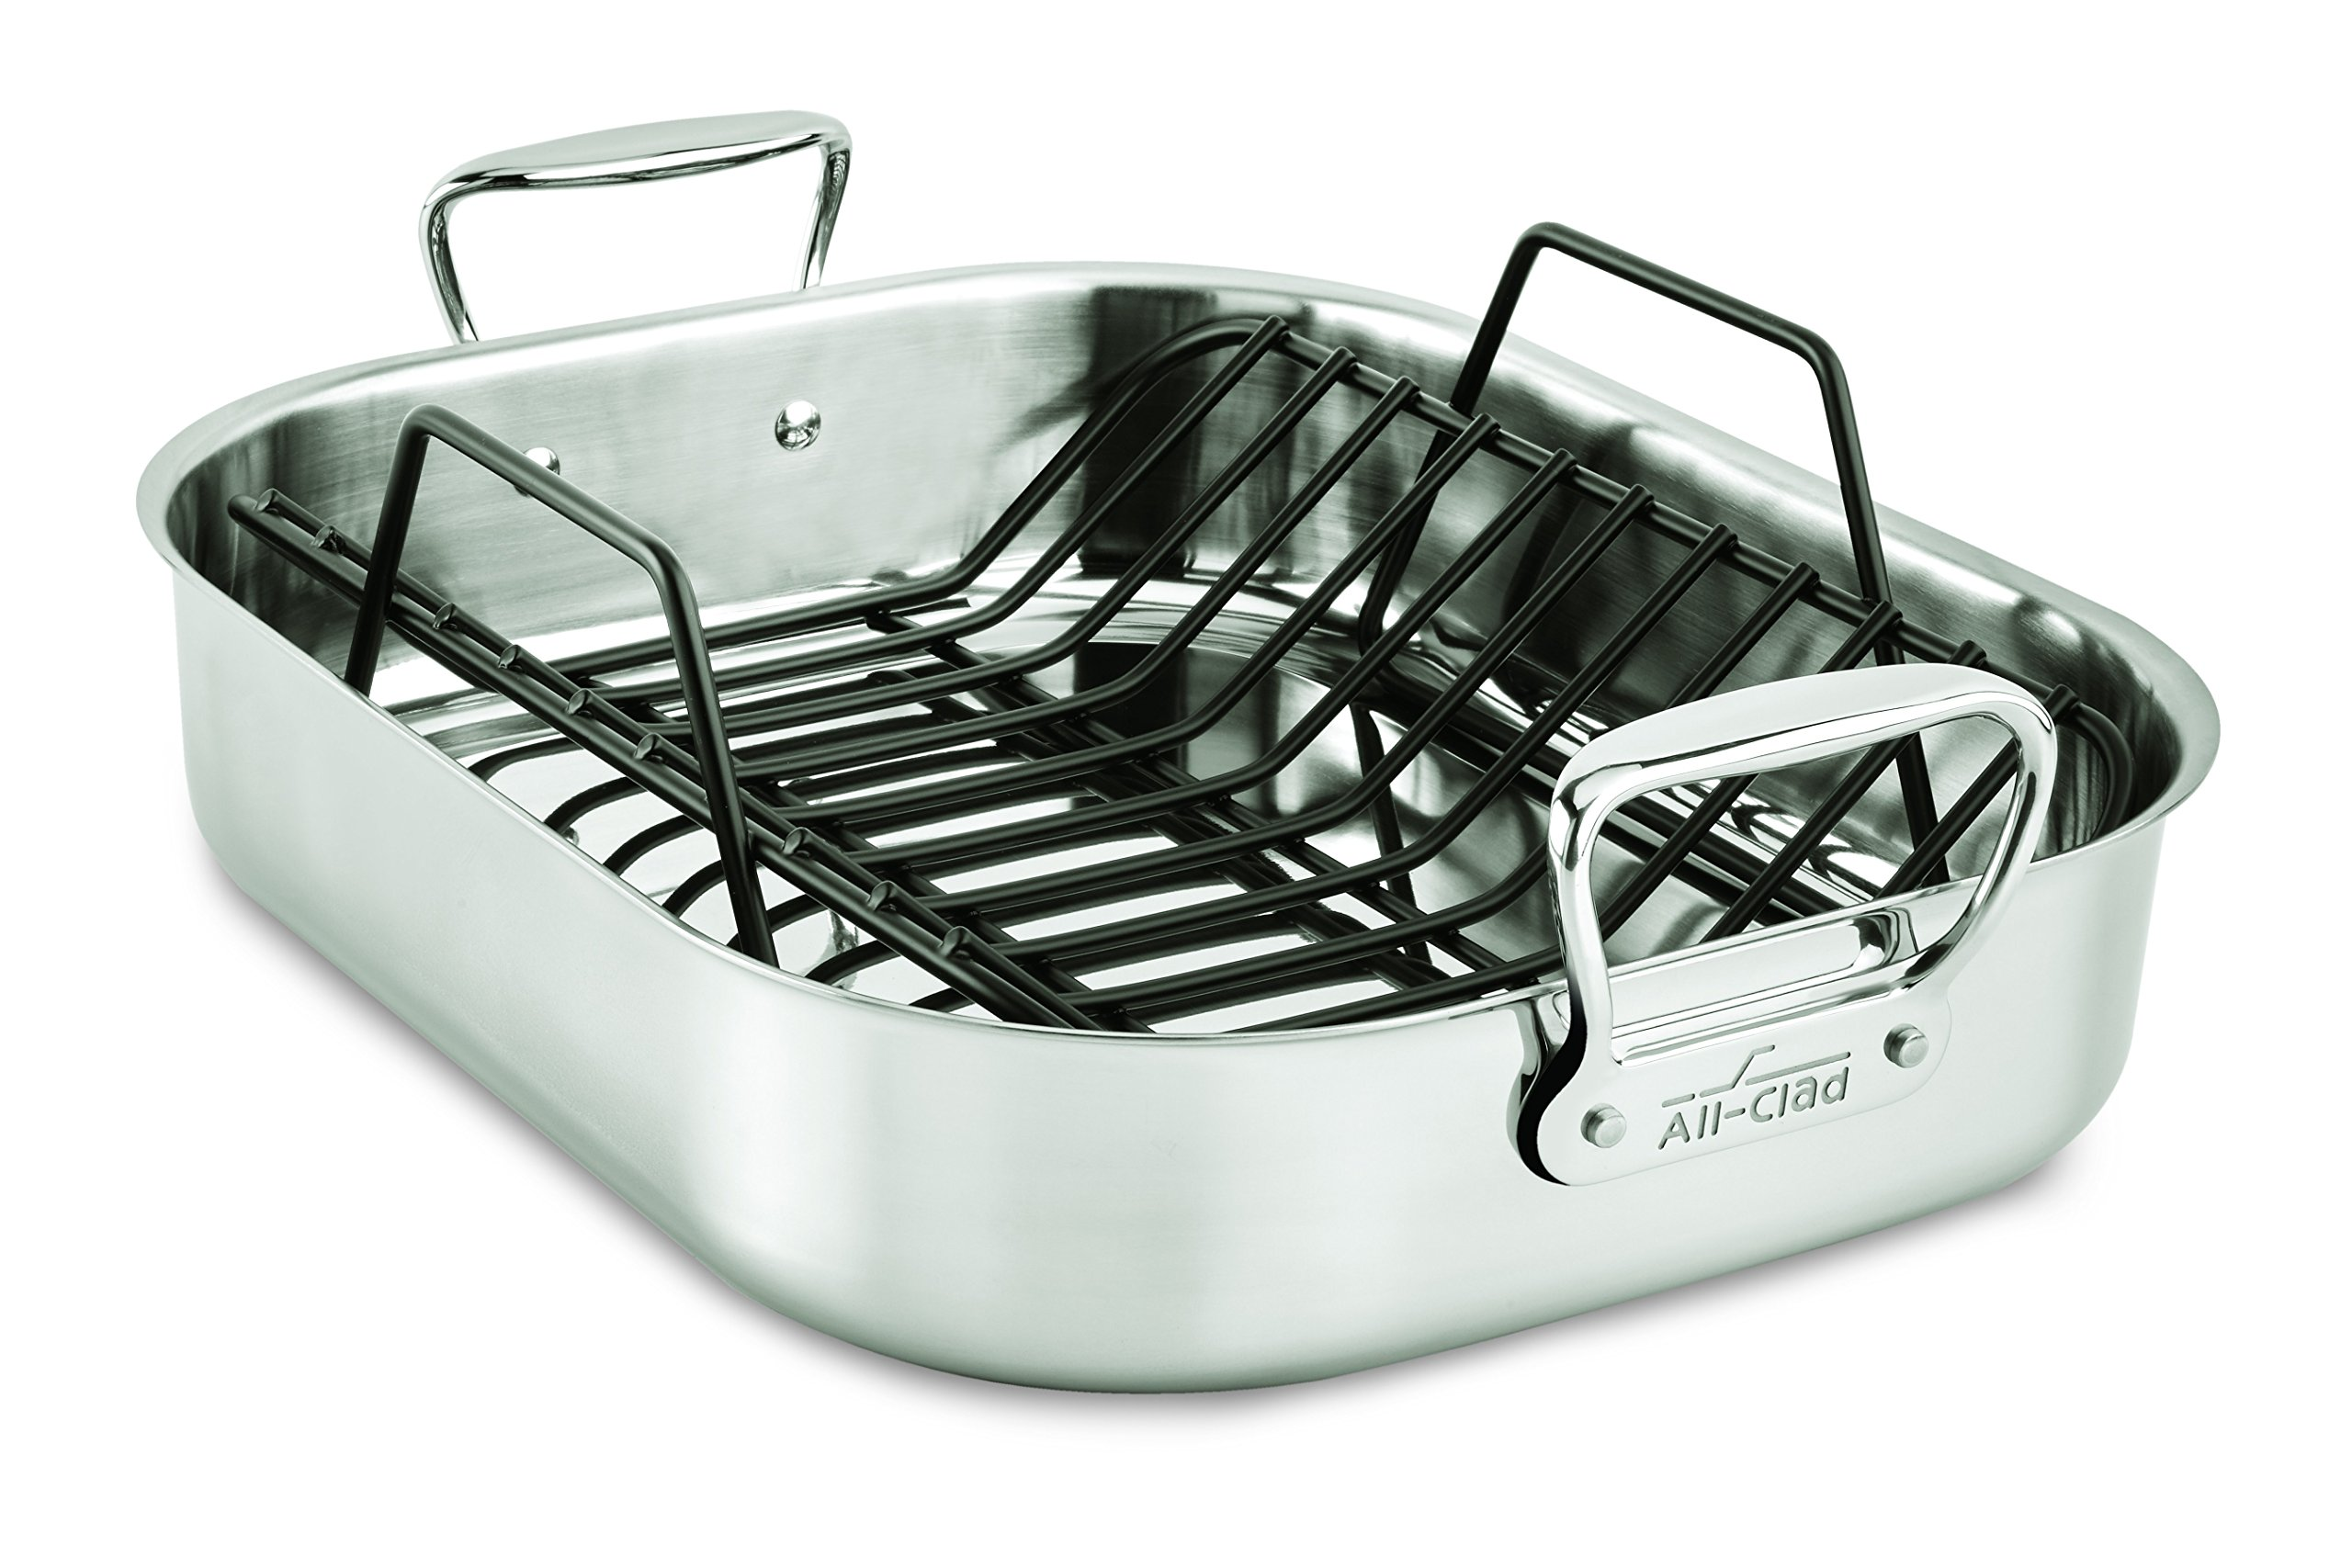 All-Clad E752C264 Stainless Steel Dishwasher Safe Large 13-Inch x 16-Inch Roaster with Nonstick Rack Cookware, 16-Inch, Silver by All-Clad